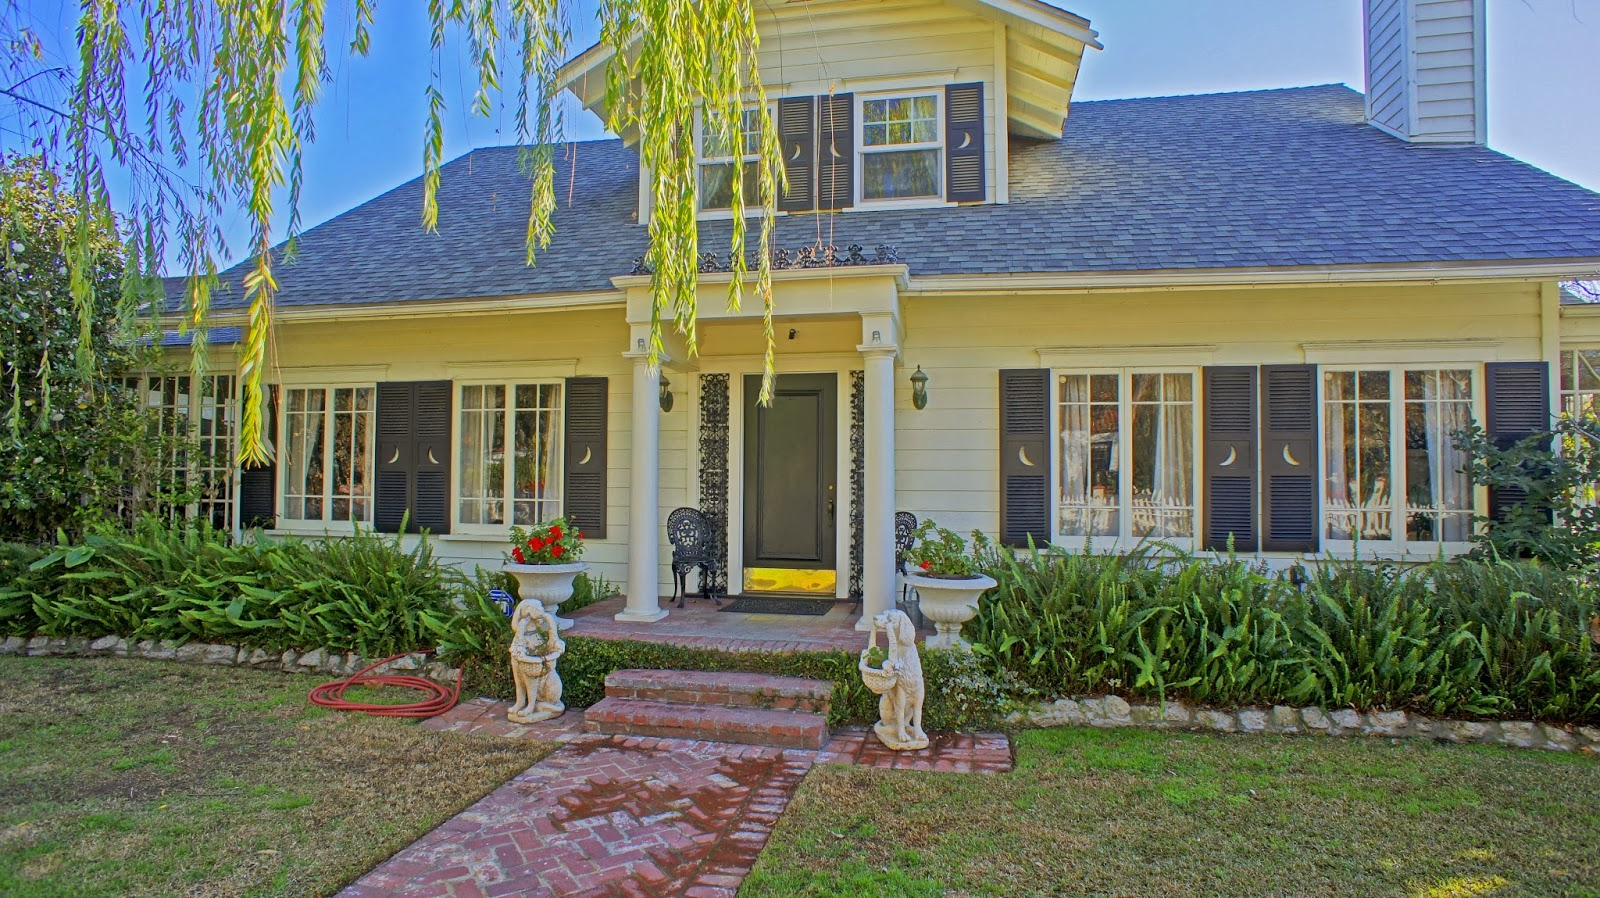 11122 Kling Street, West Toluca Lake Listed With Heather Farquhar